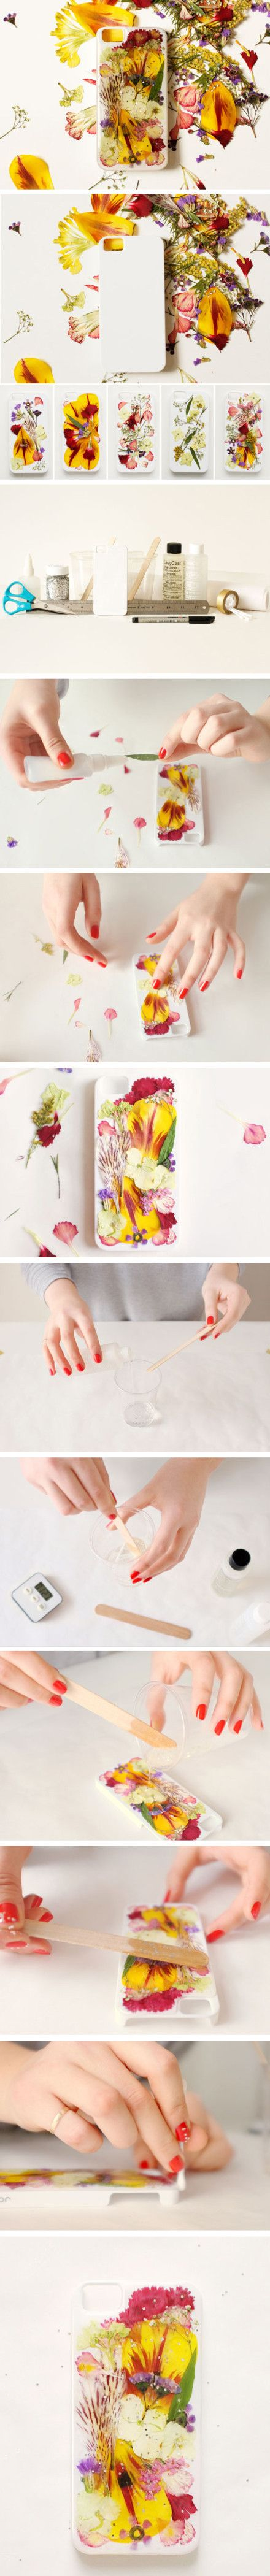 diy dried phone cases